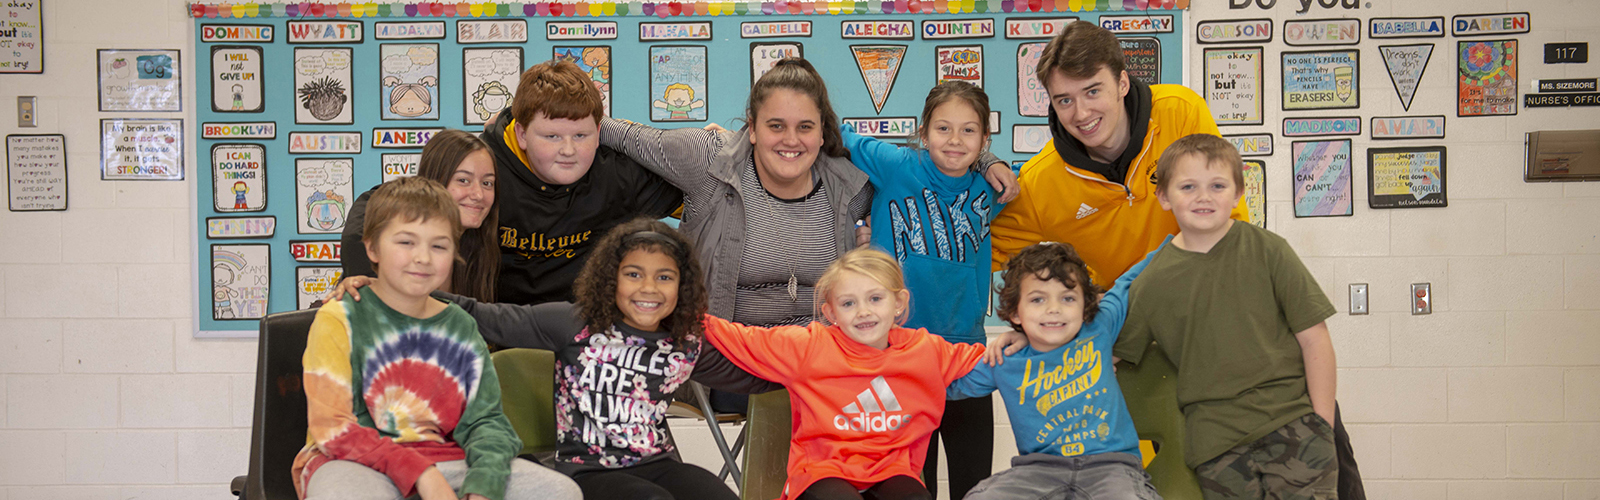 A group of Bellevue students, ranging from elementary school kids through current seniors. <span class='image-credits'>Joe Simon</span>